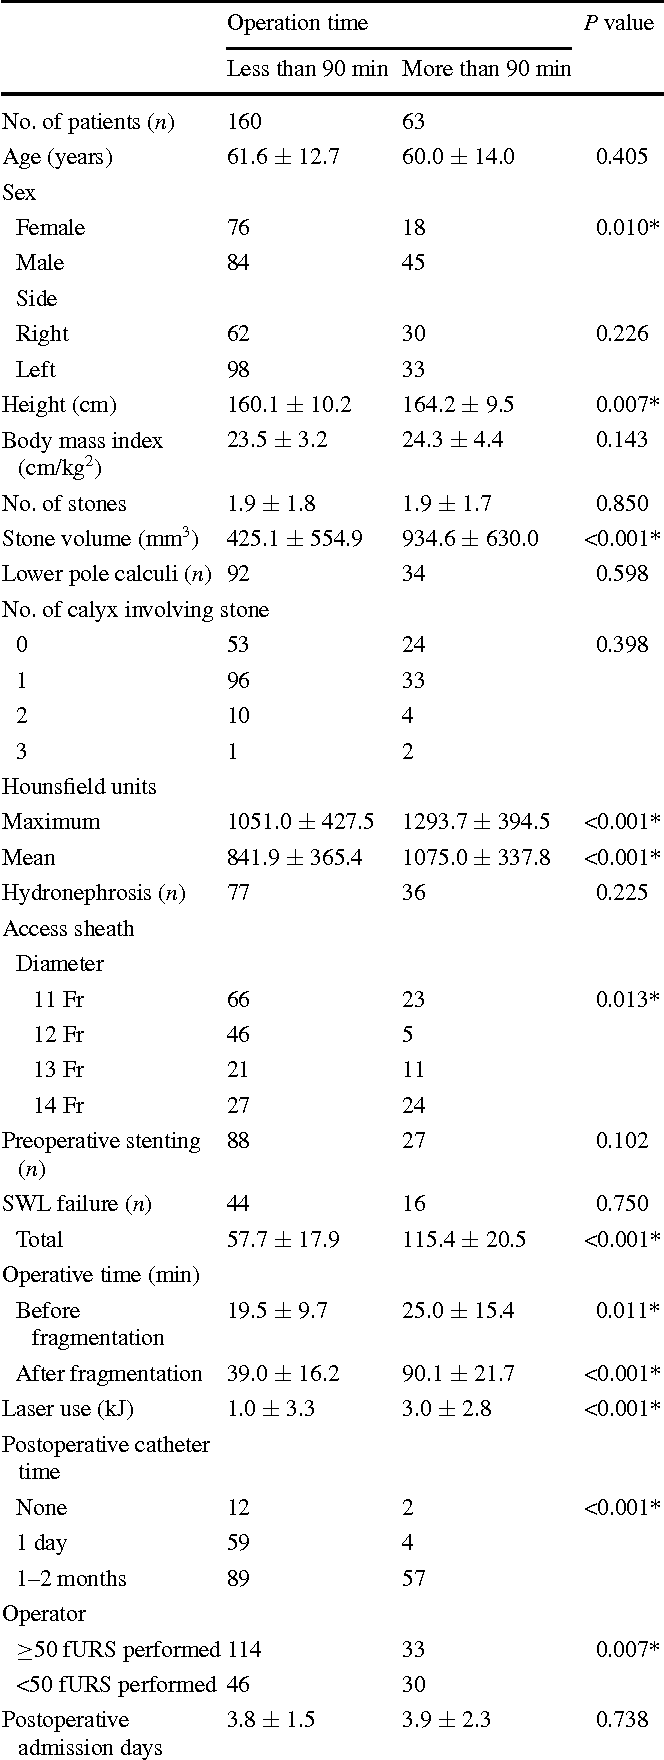 Table 1 Comparison of patient and stone characteristics between the procedures with an operative time of less and more than 90 min